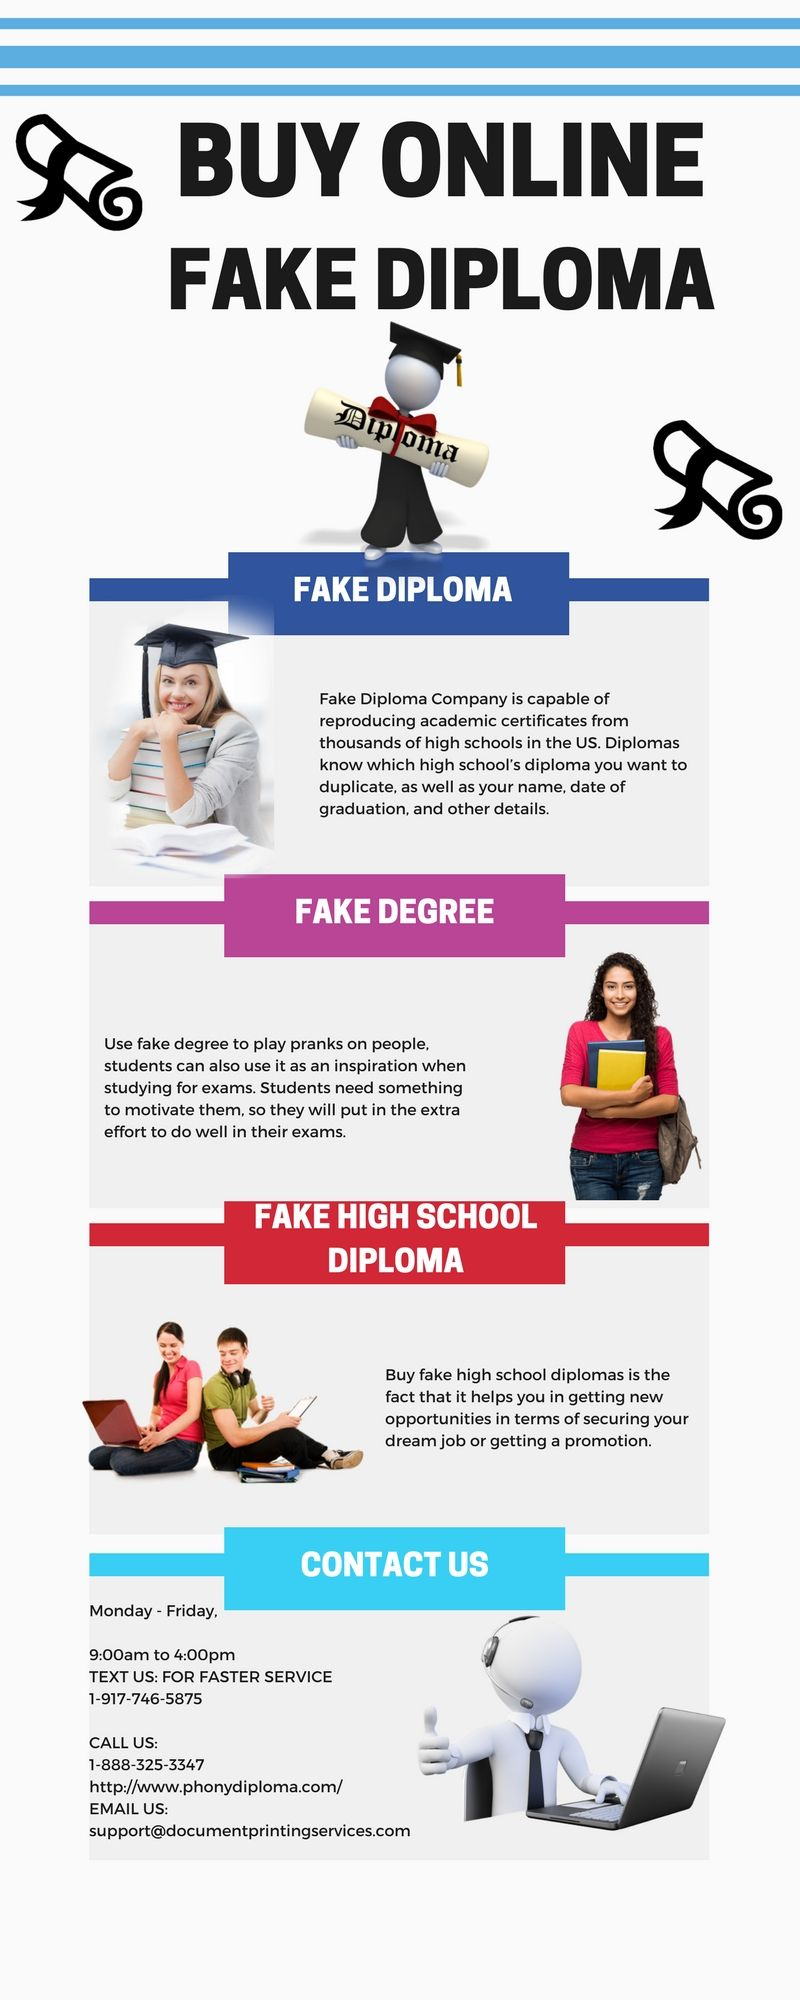 If you buy fake diploma, you can get new opportunities of